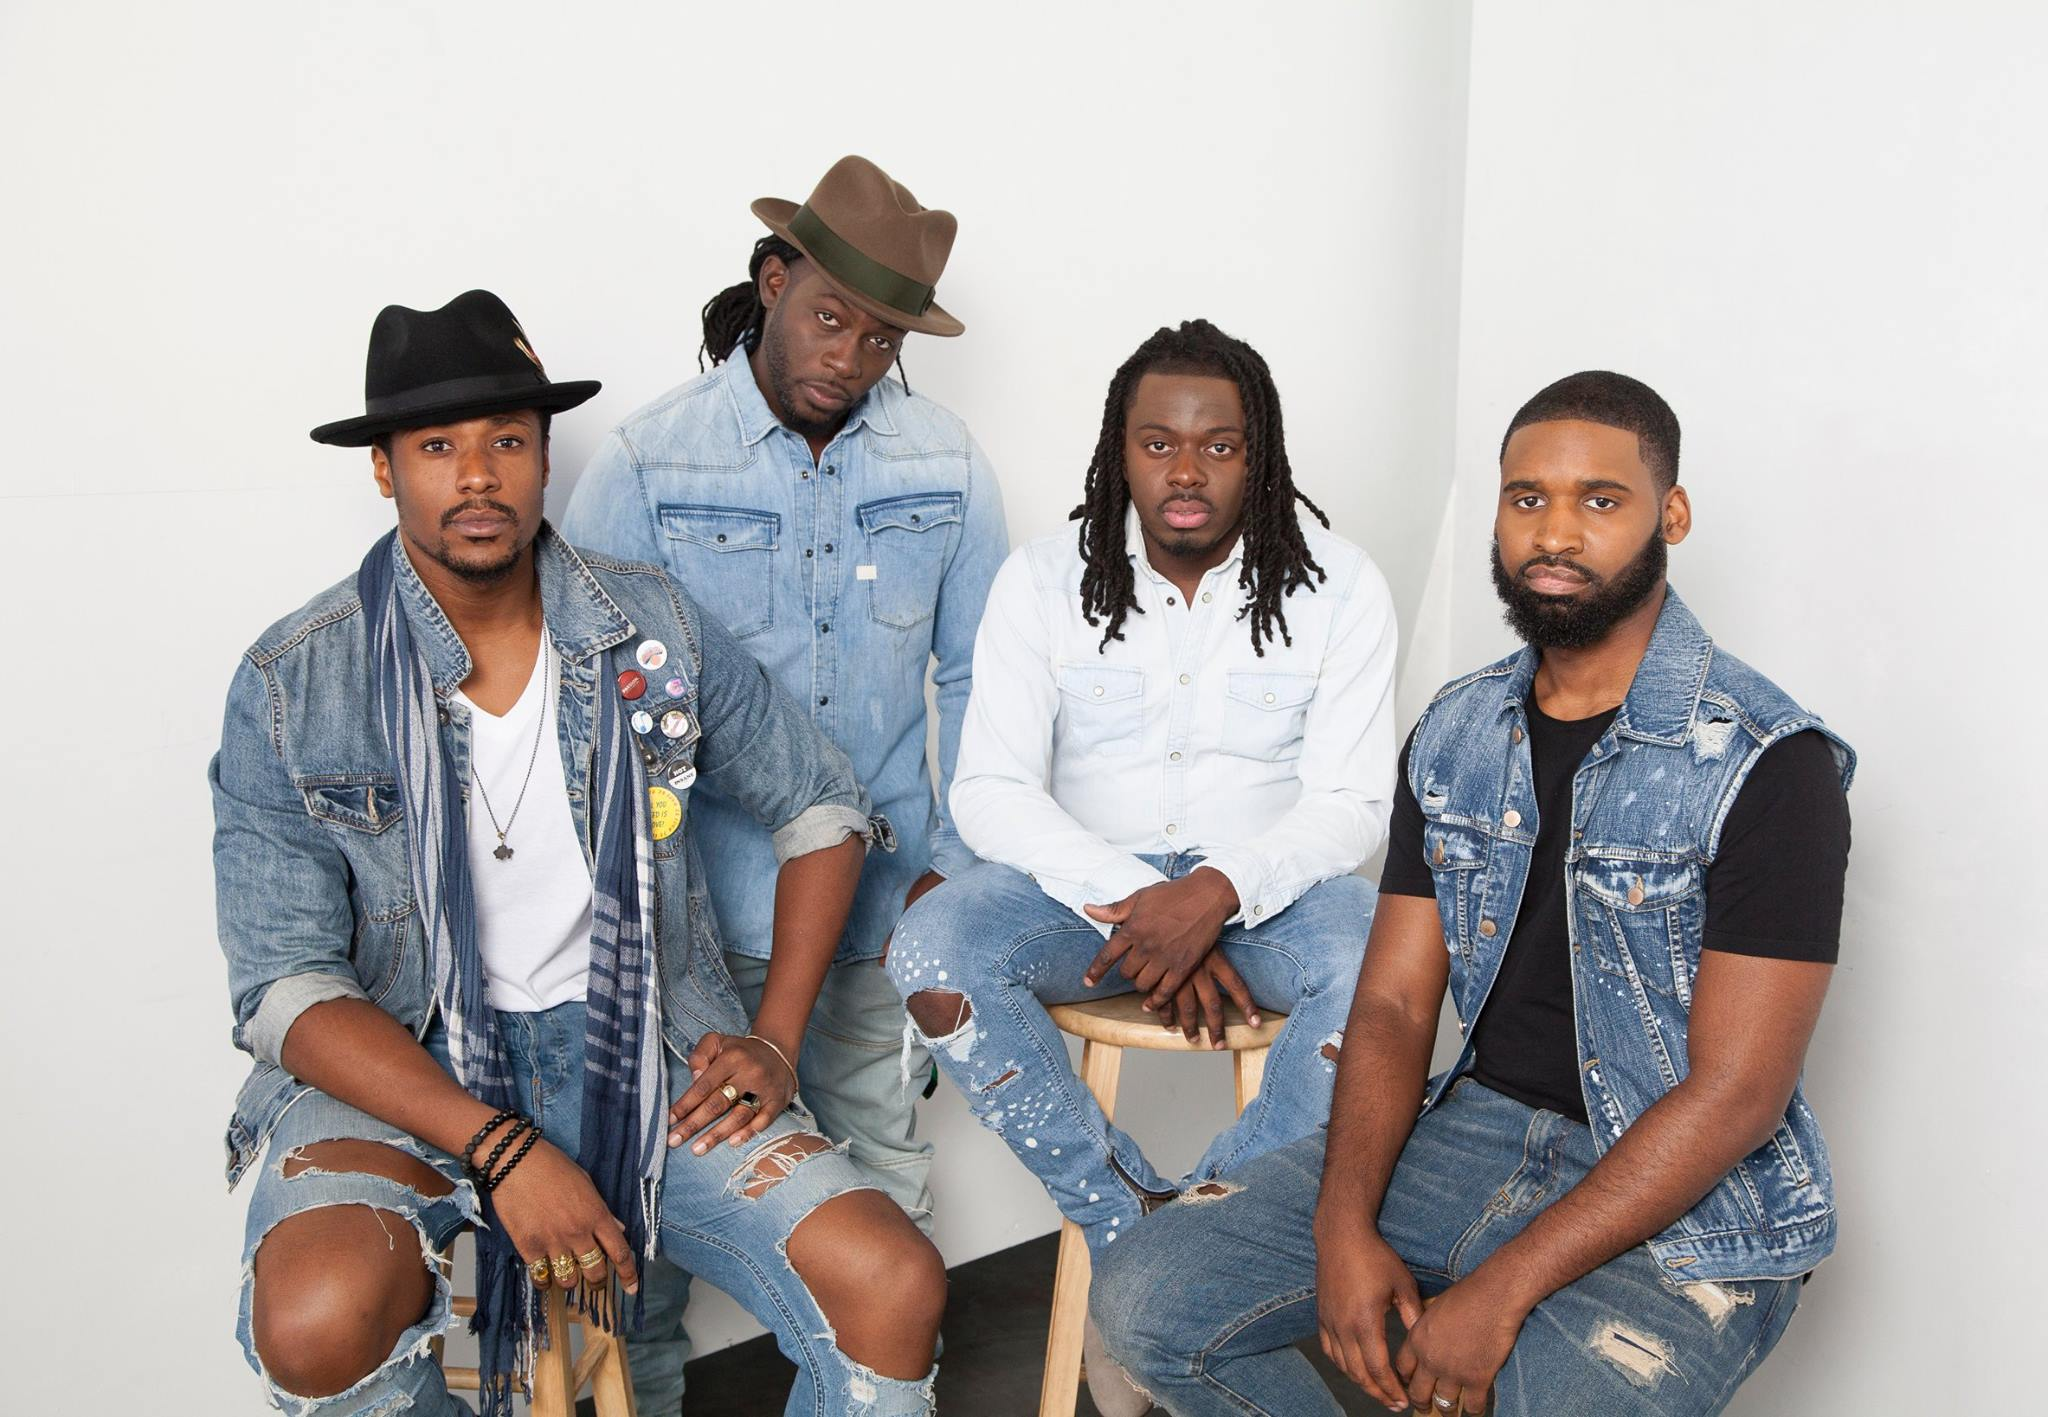 Jackson Chery and IET Band Will Perform at the Essence Women In Music Honoring Missy Elliot